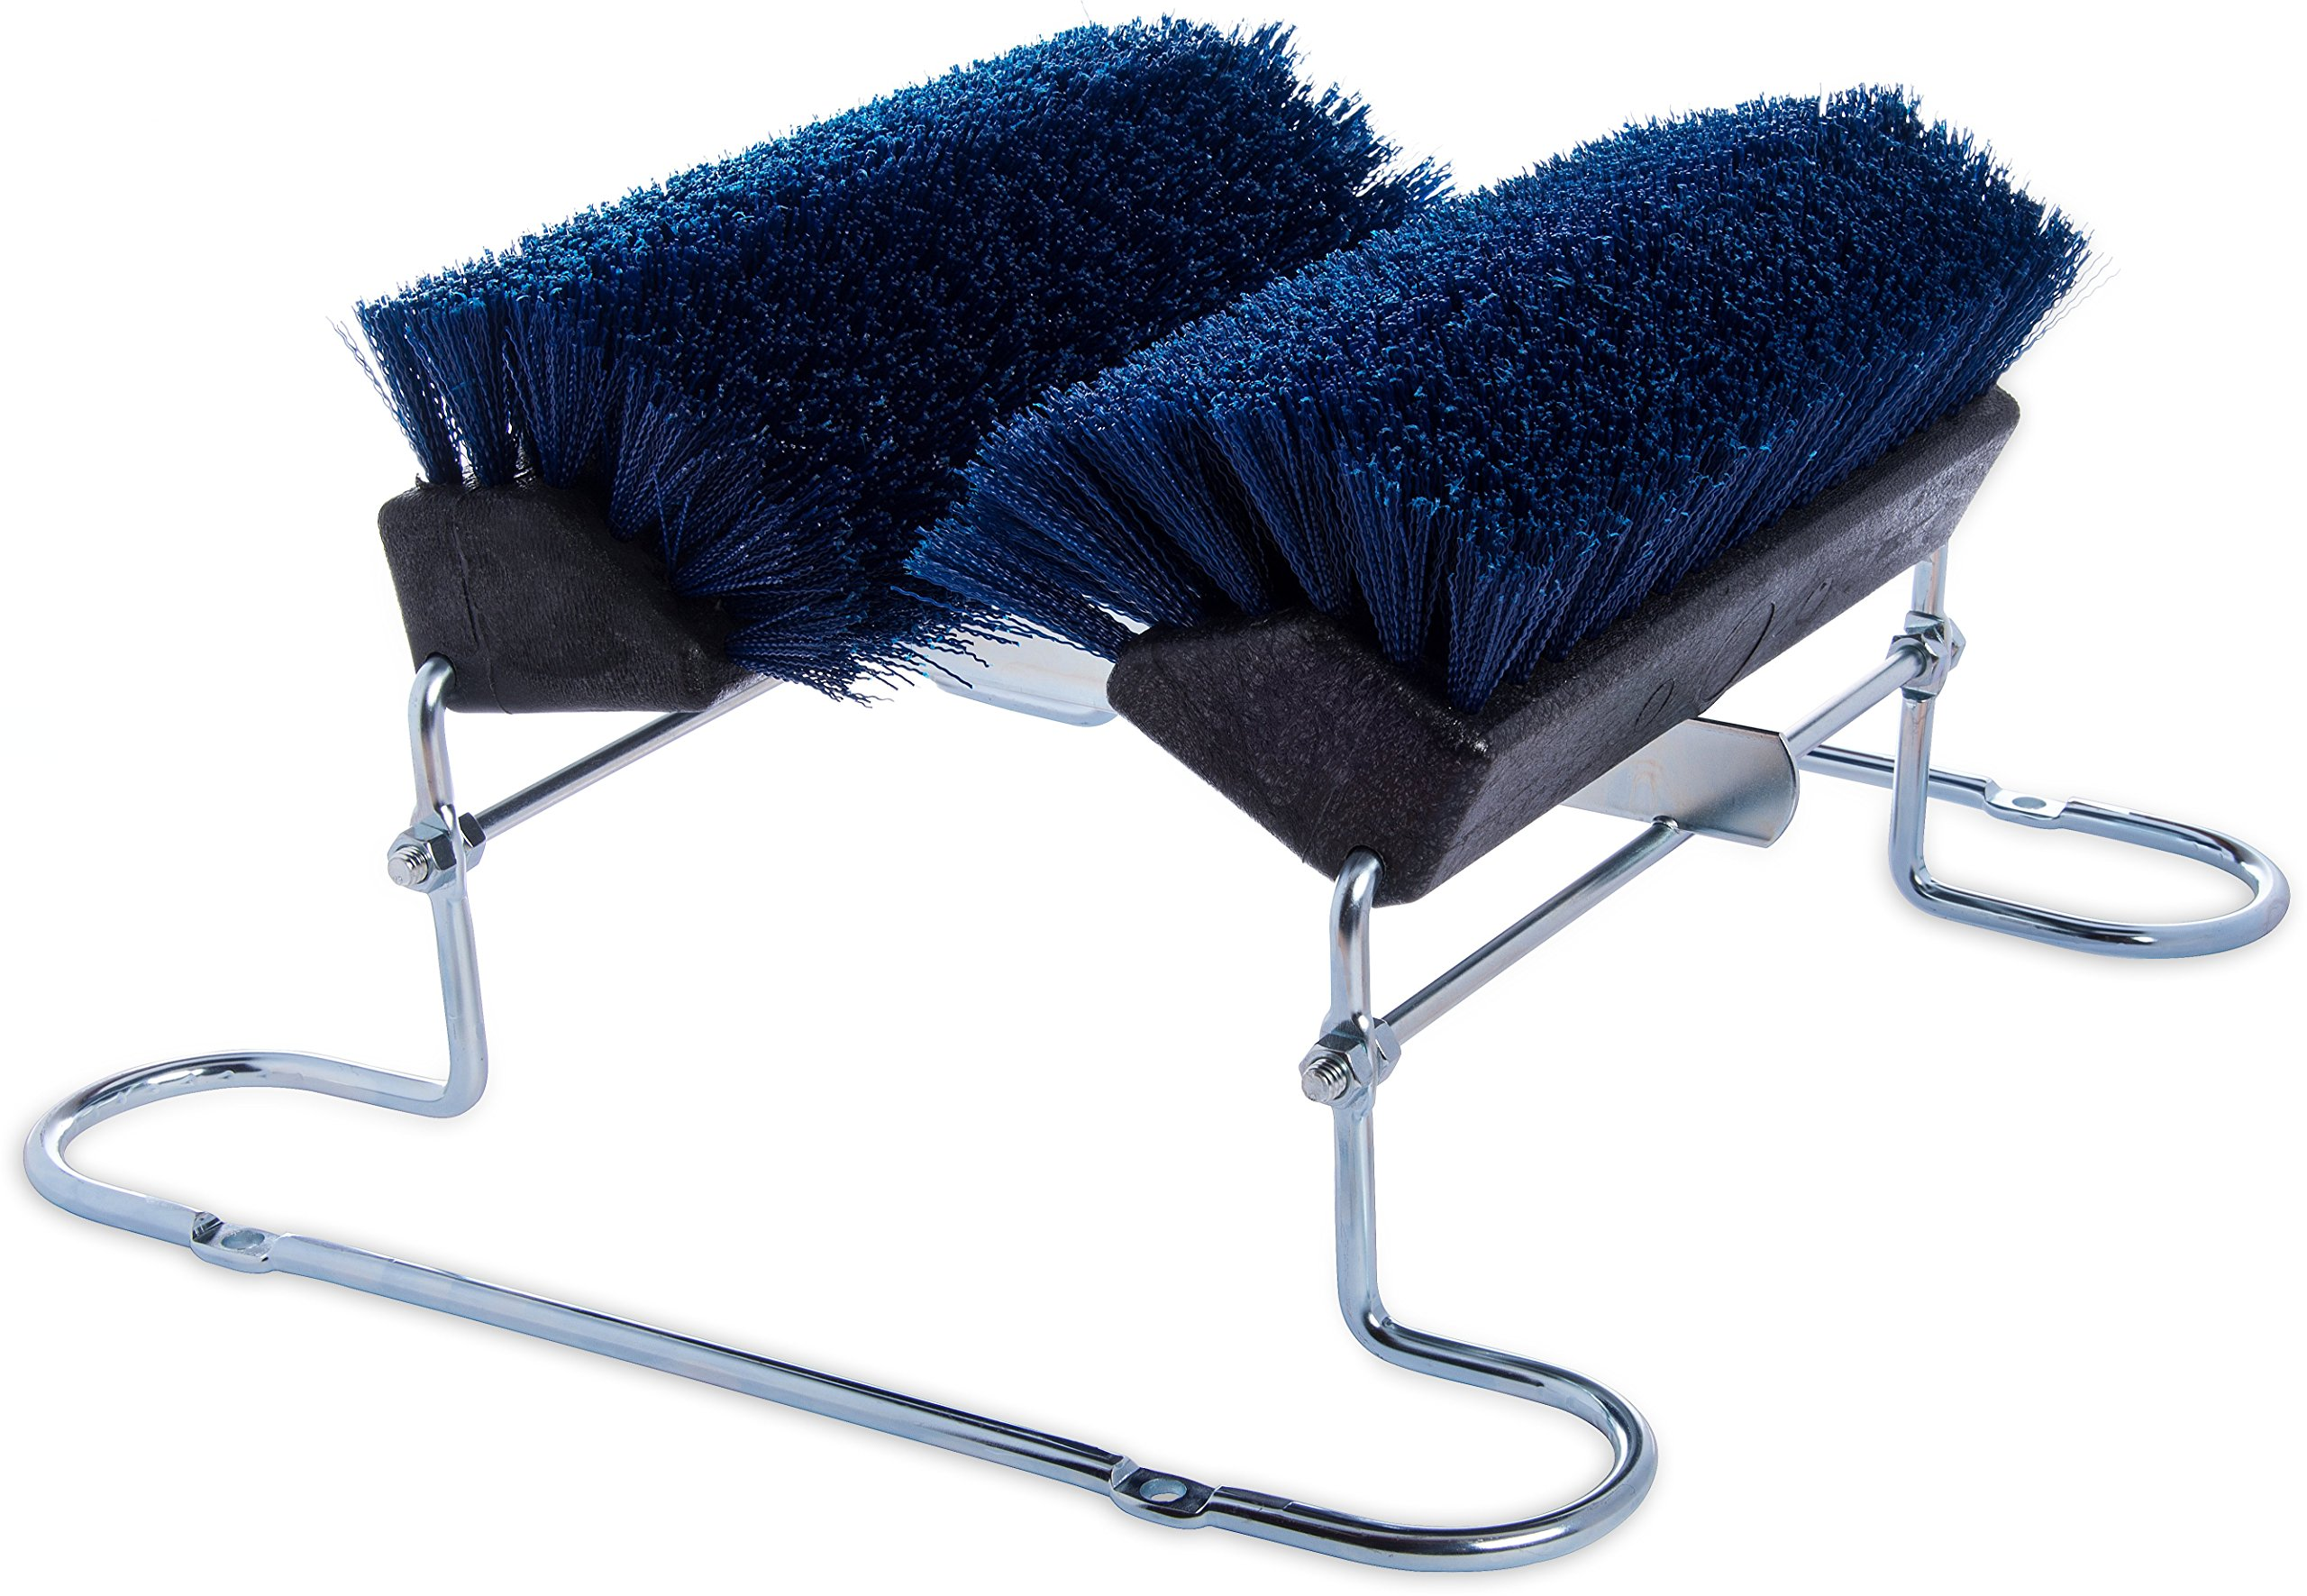 Carlisle 4042414 Commercial Boot 'N Shoe Brush Scraper with Chrome Plated Steel Frame, Blue